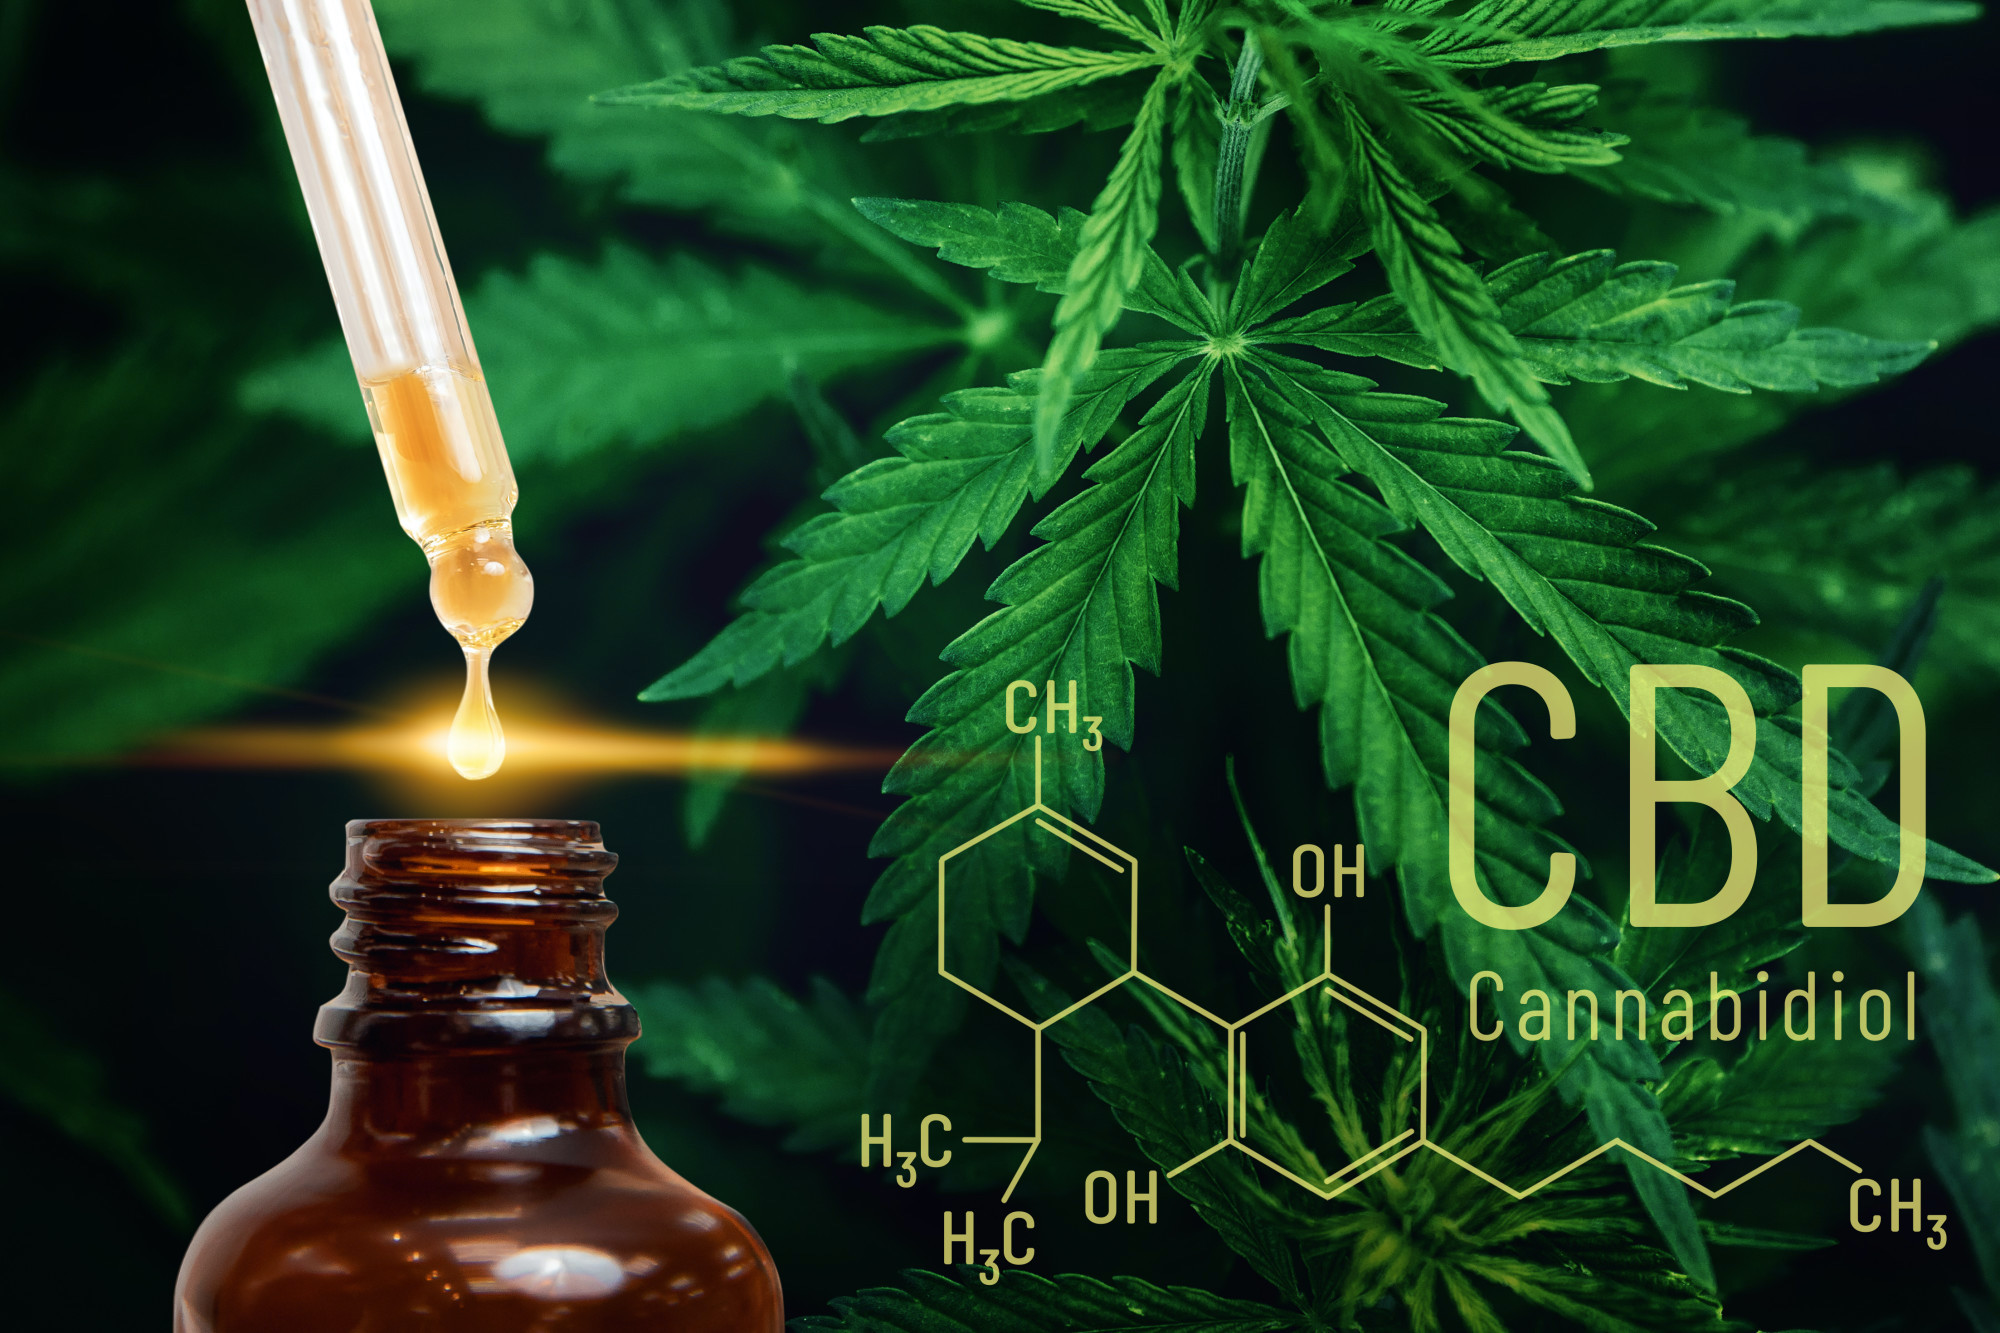 Do you want to purchase CBD oil products that are the best on the market? Here are the different types of CBD products that exist today.